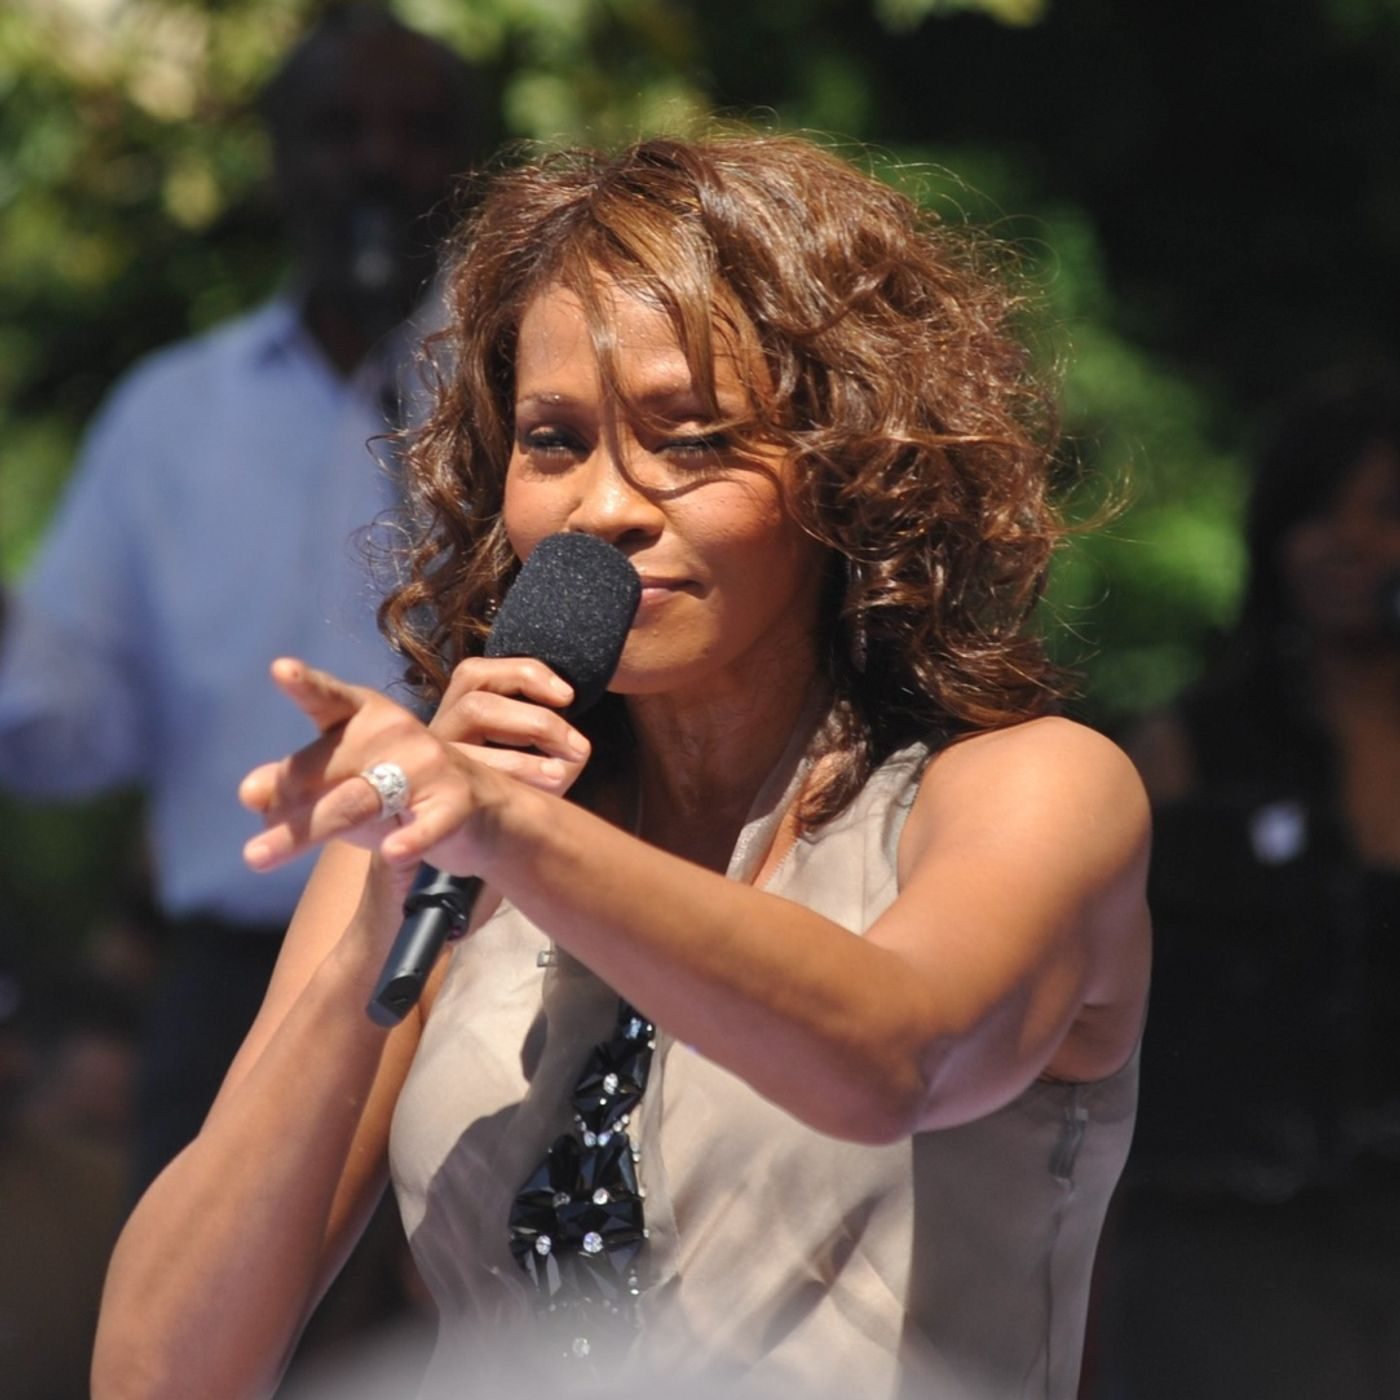 Whitney Houston - Words, Songs, and Spiritual - 4:27:21, 3.31 PM